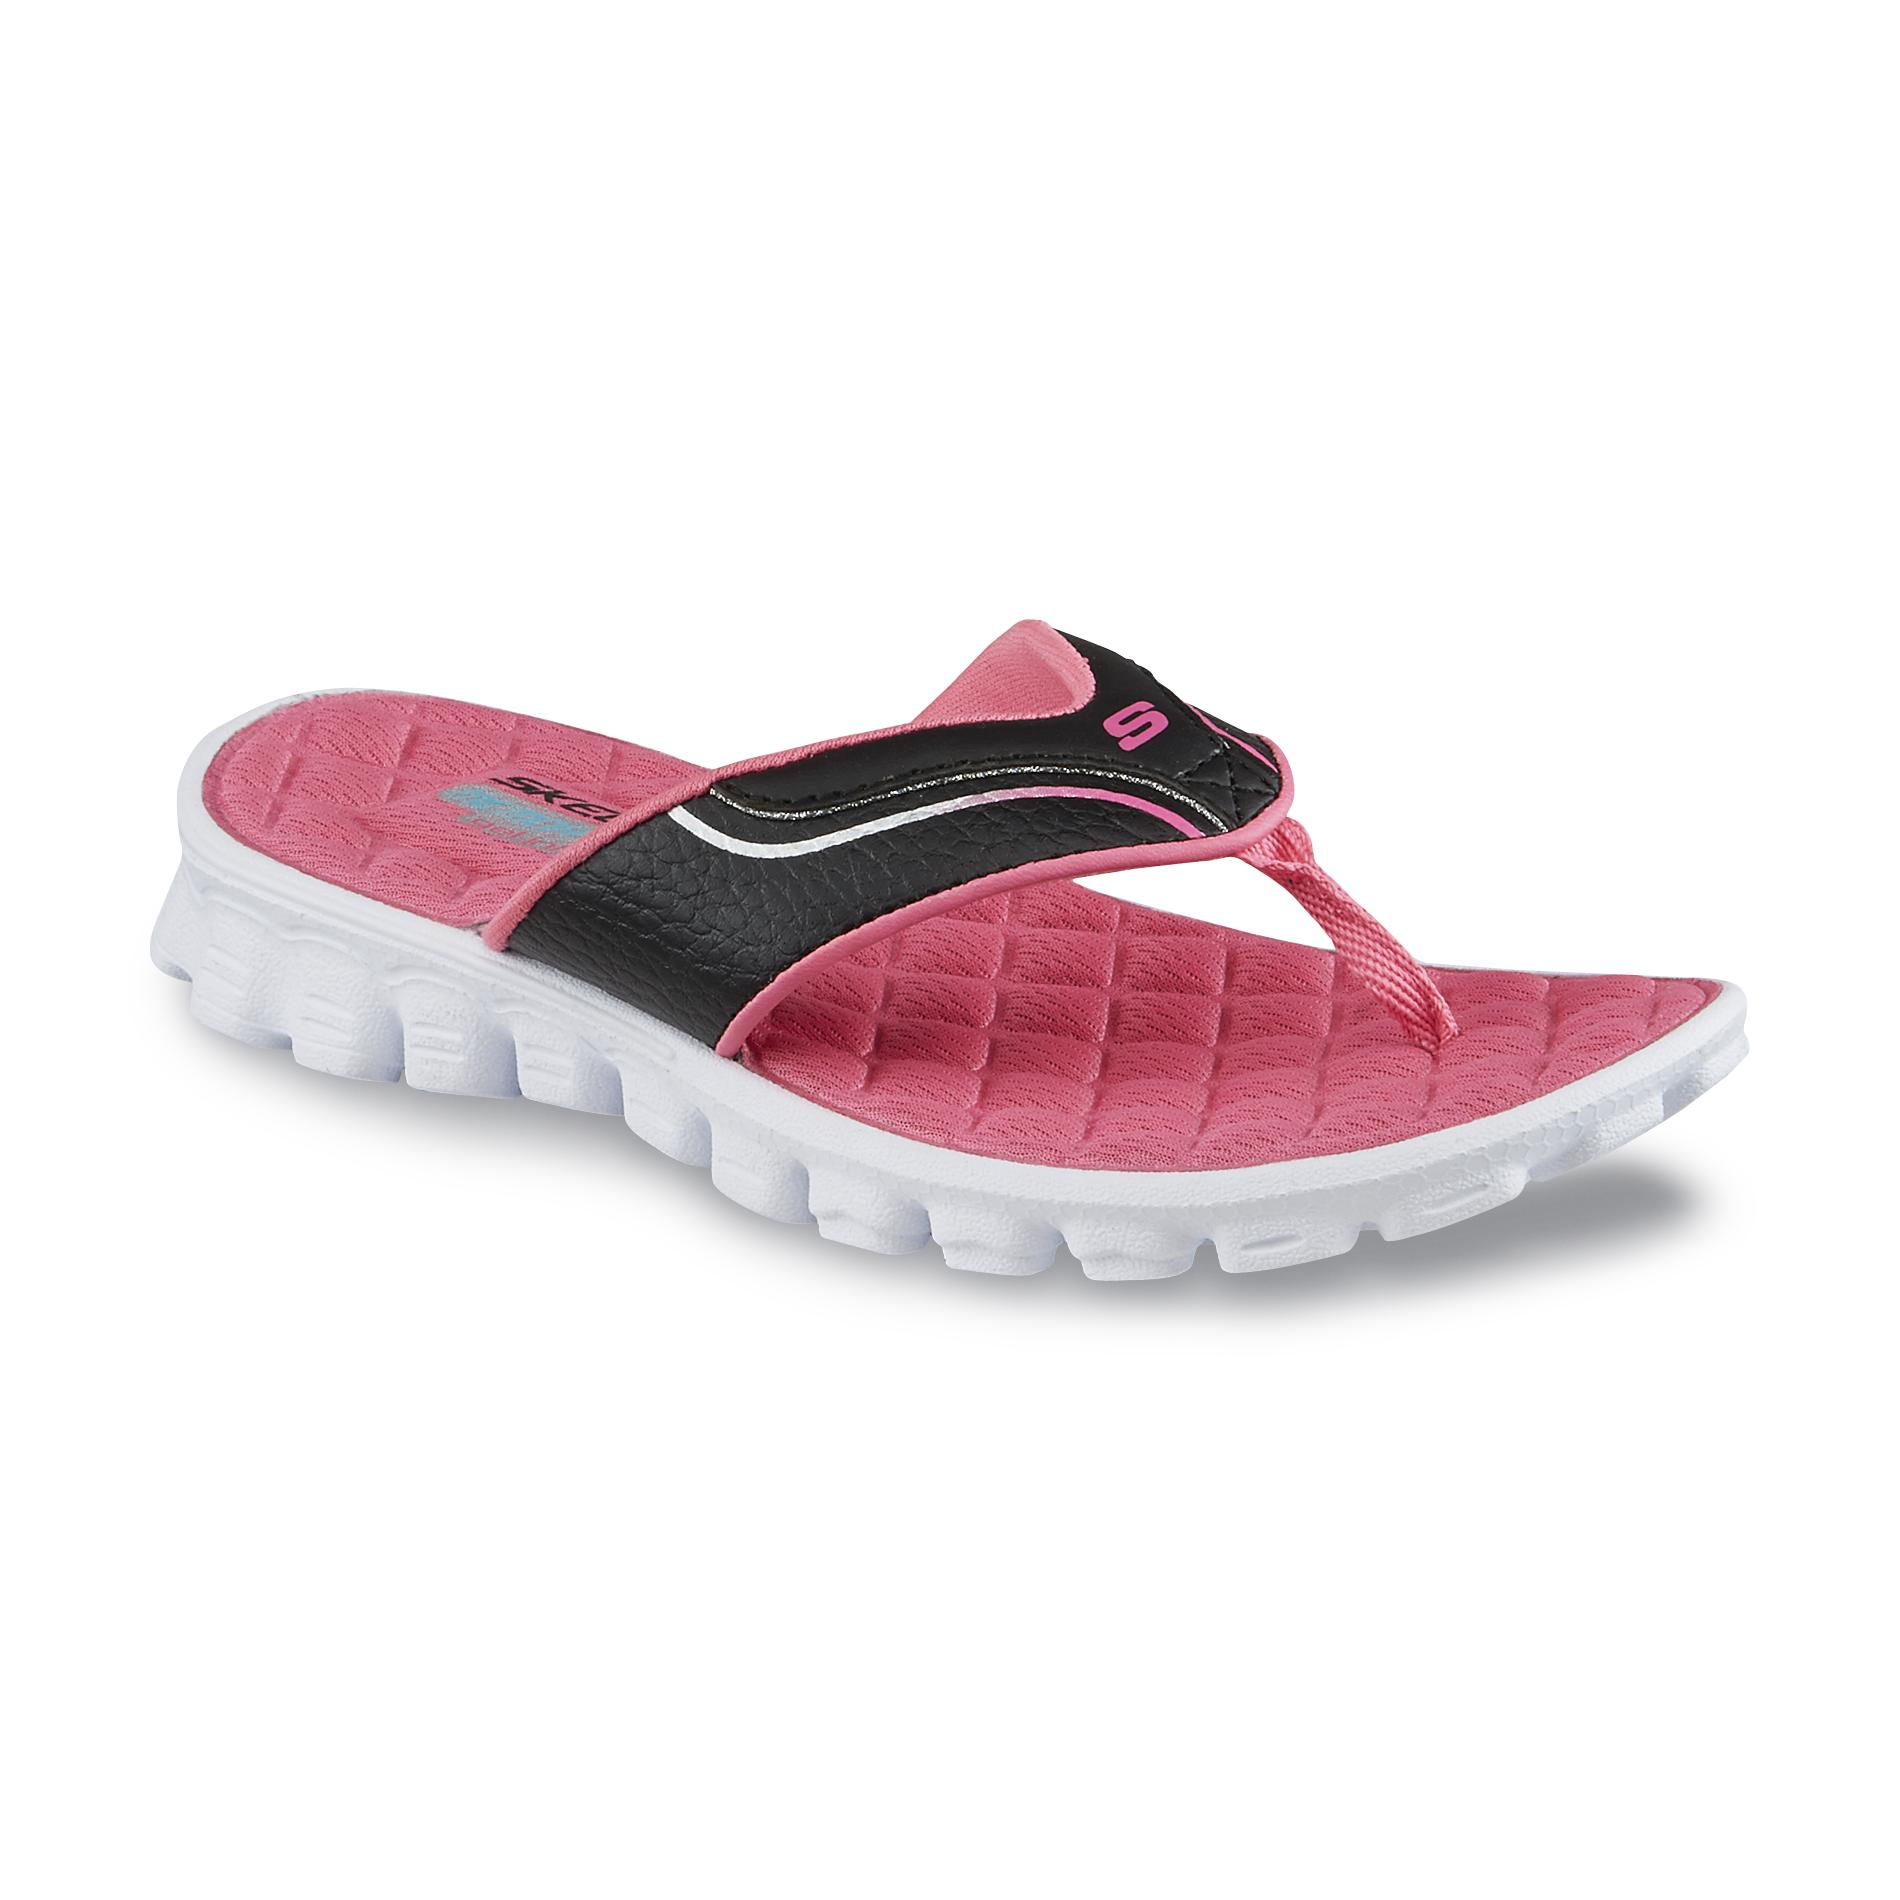 Skechers Girl's Sea Bee Pink/Black Flip-Flop